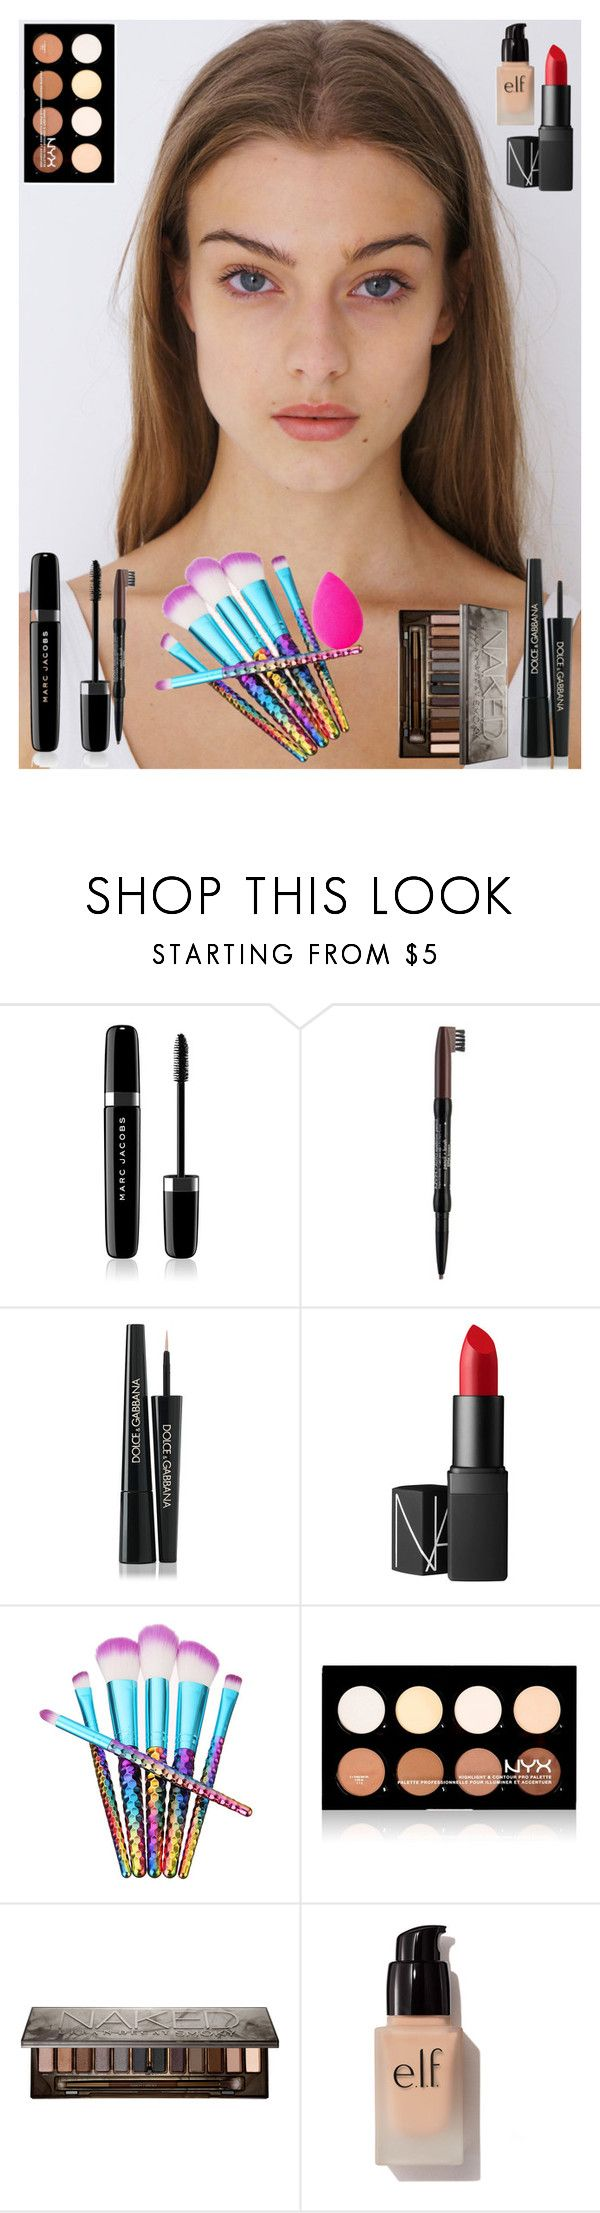 """""""make-up tutorial"""" by amiinaah ❤ liked on Polyvore featuring beauty, Marc Jacobs, NYX, Dolce&Gabbana, NARS Cosmetics, Urban Decay, e.l.f. and beautyblender"""